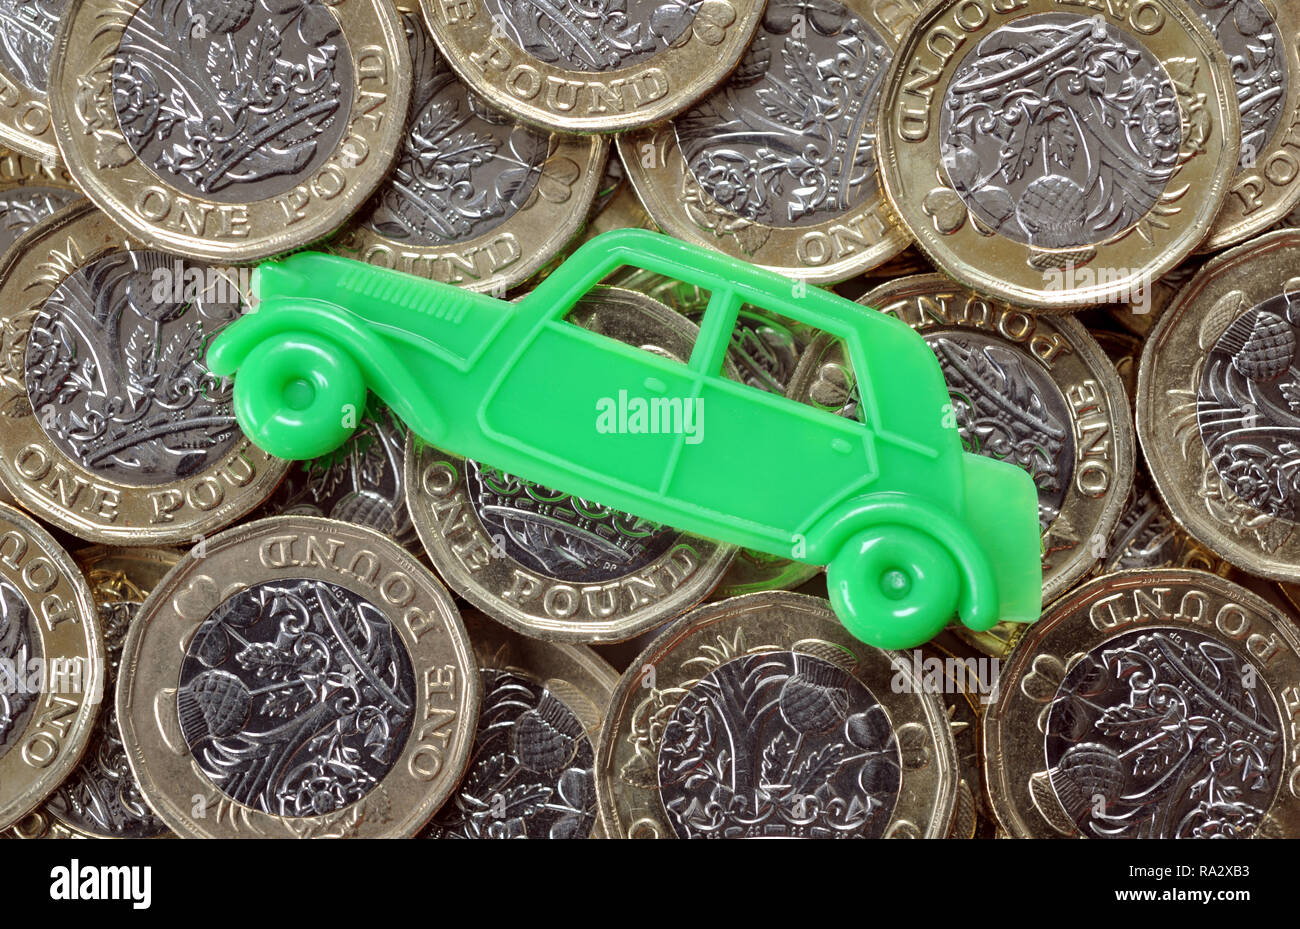 TOY CAR WITH BRITISH ONE POUND COINS RE MOTORING COSTS INSURANCE CAR BUYING SERVICING PRICES  ETC - Stock Image